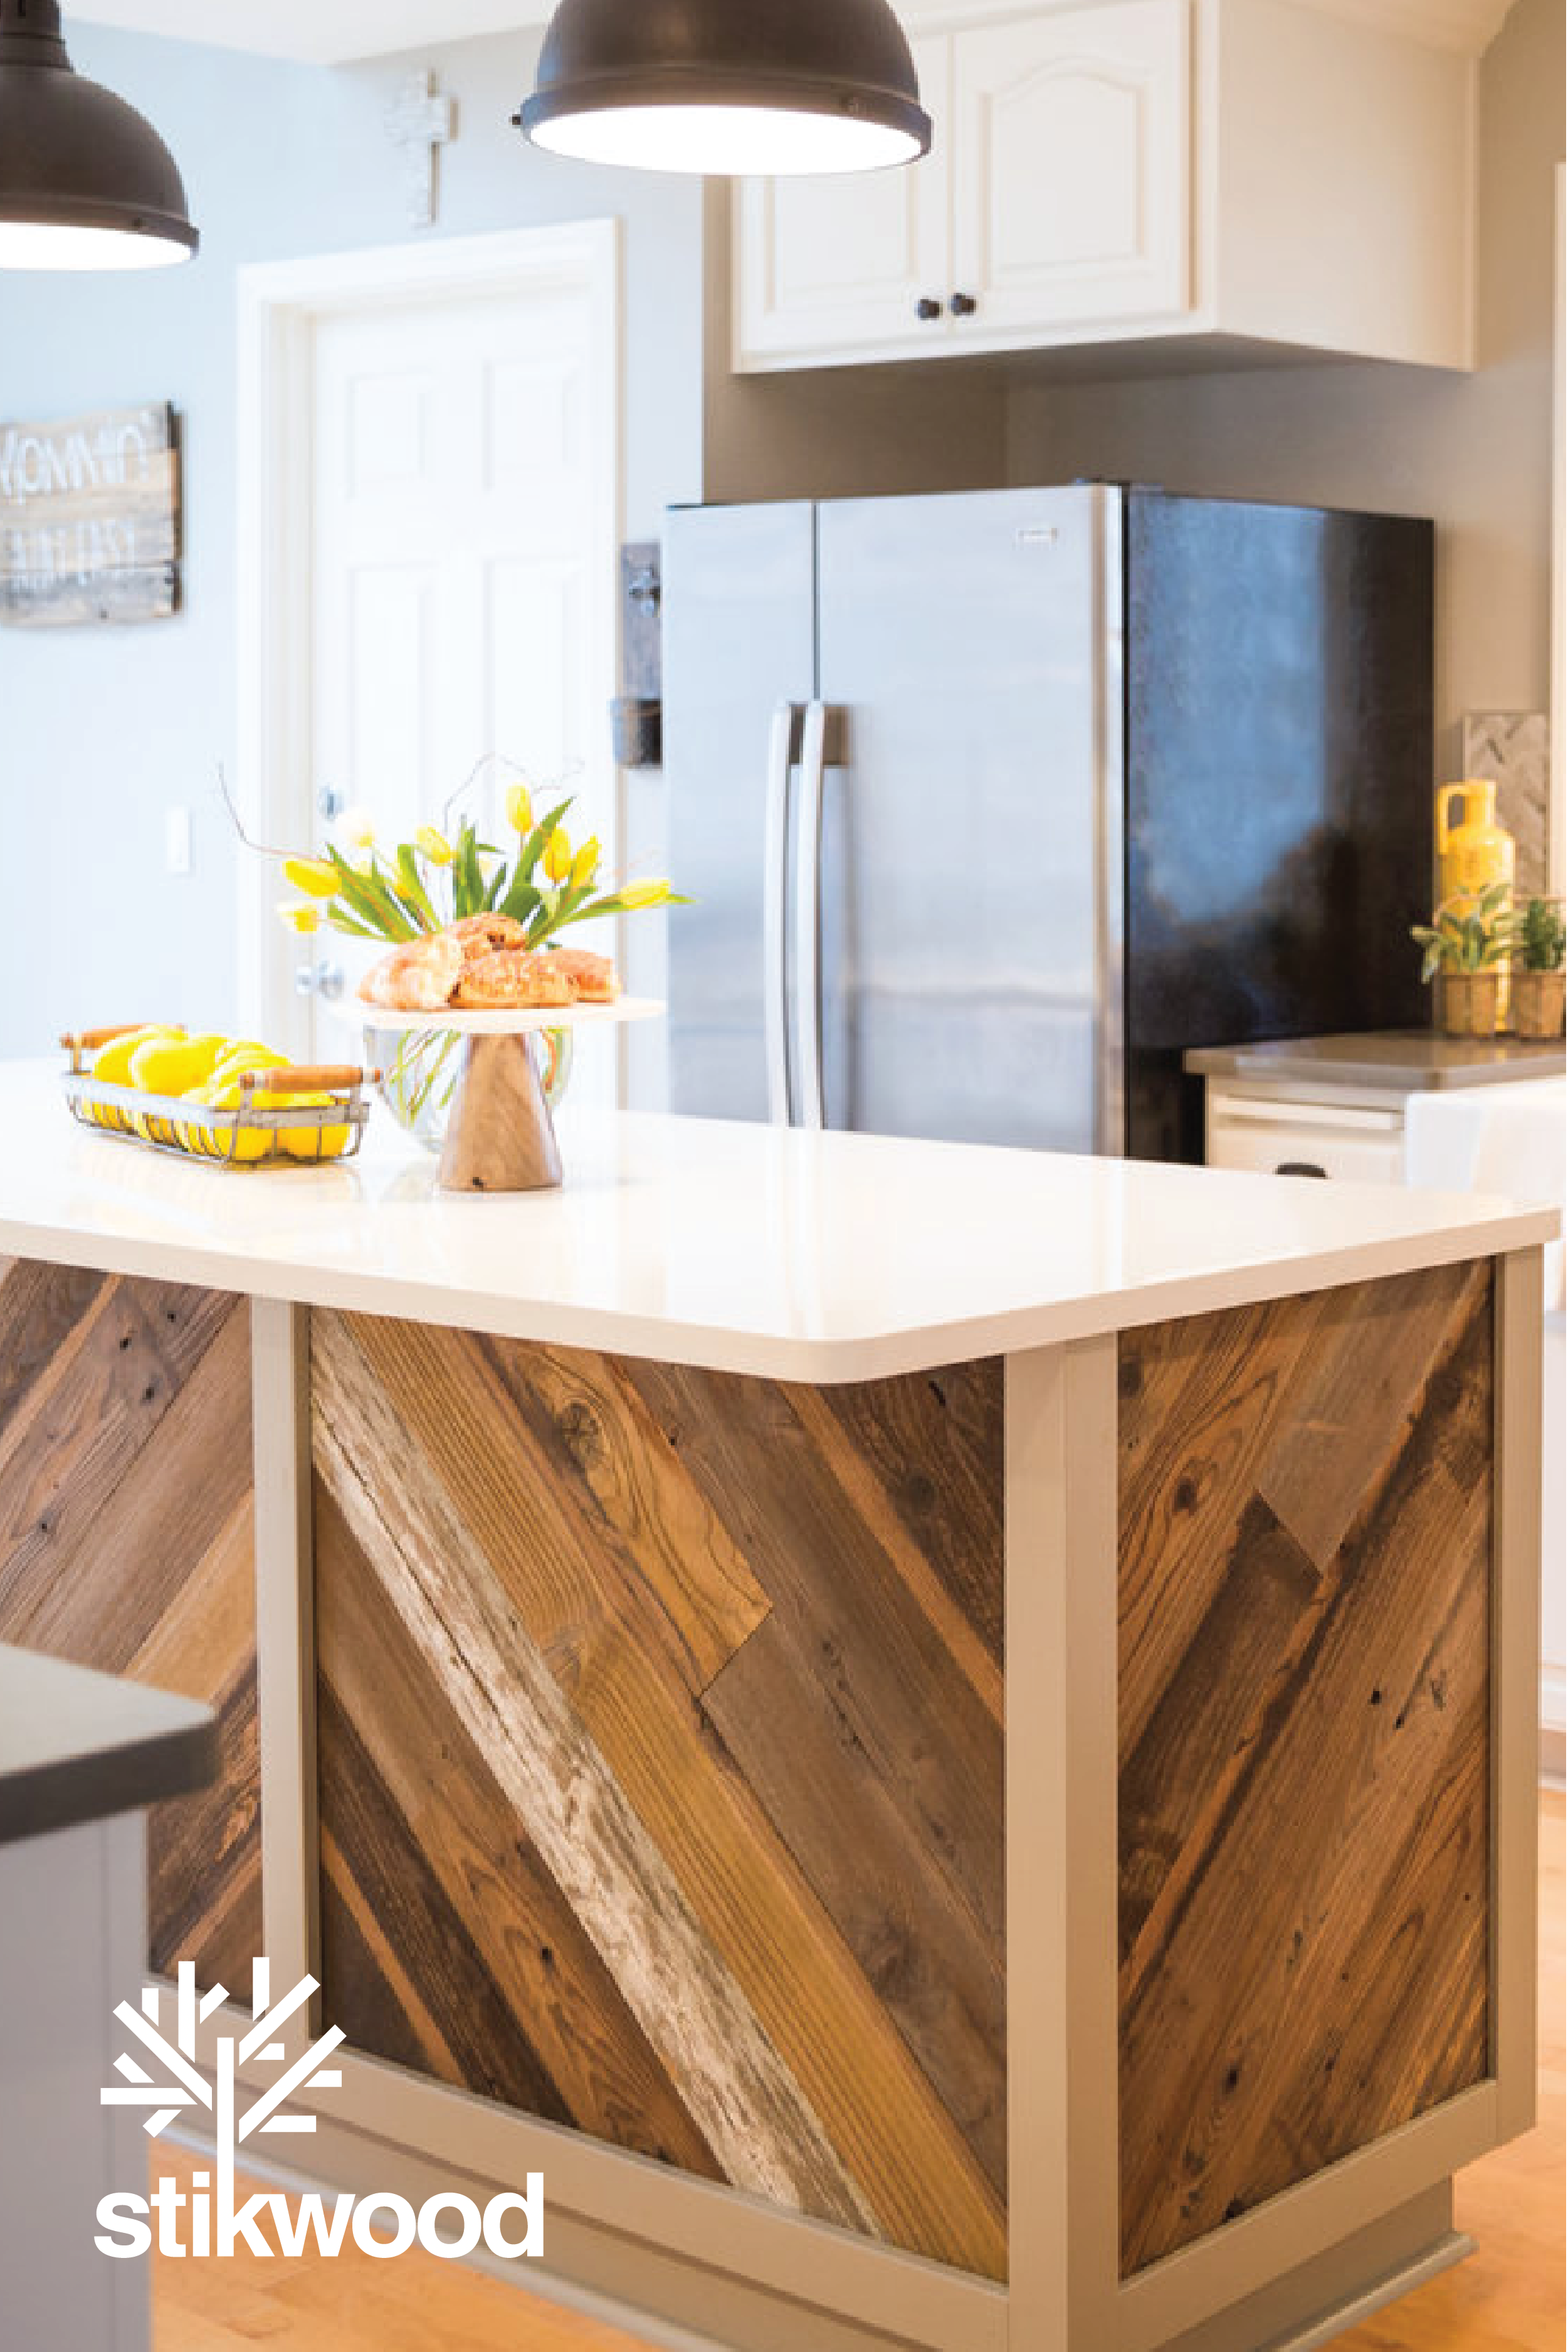 Wood Plank Kitchen Islands Using Stikwood In 2020 Wood Kitchen Island Reclaimed Wood Kitchen Island Kitchen Island Back Panels